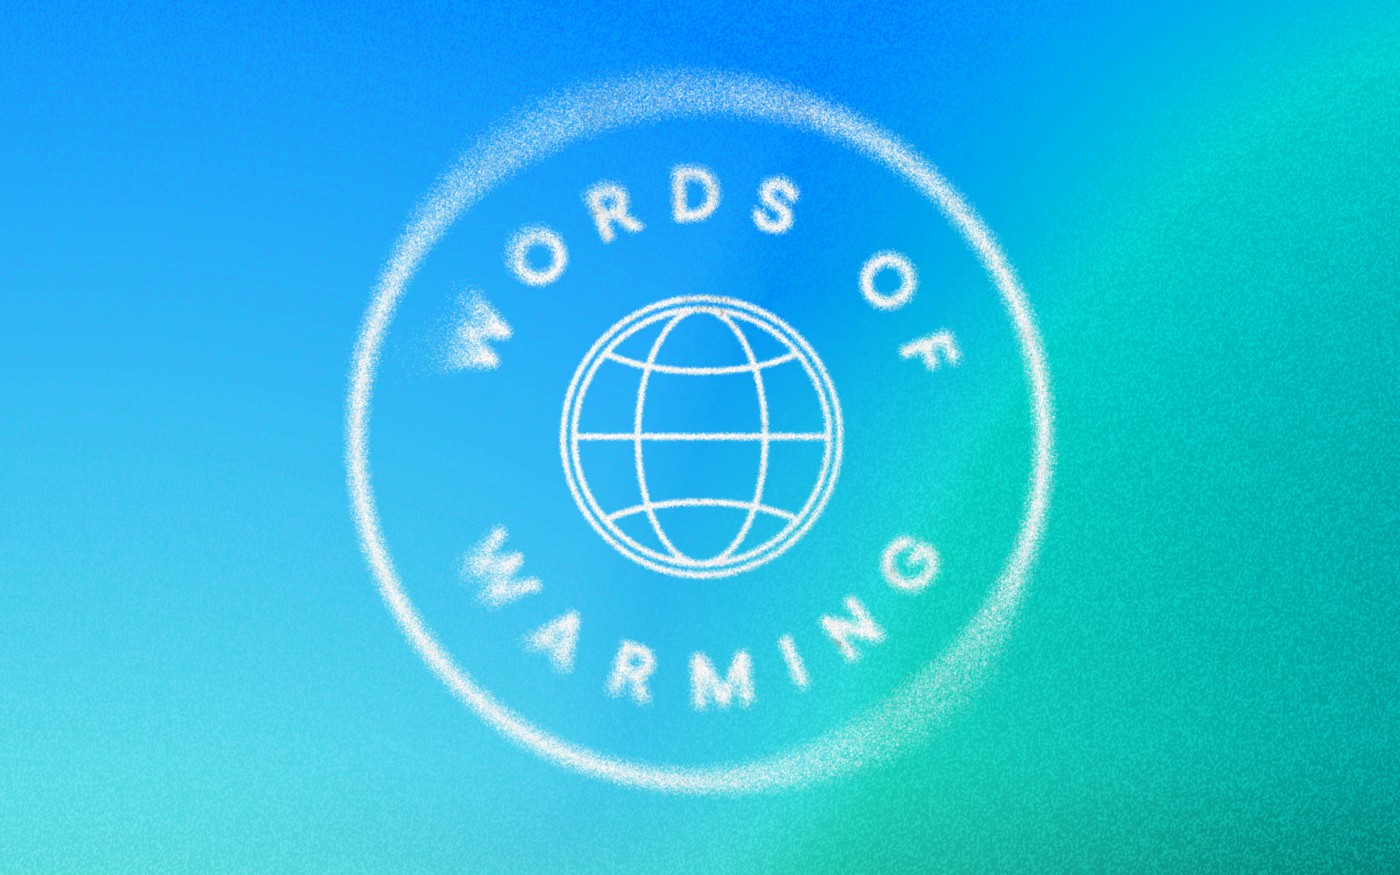 """Words of Warming"" curved around a globe with meridians, all in a big circle. The background is a blue-to-teal-to-green gradient. A radial motion blur effect and noise have been added."